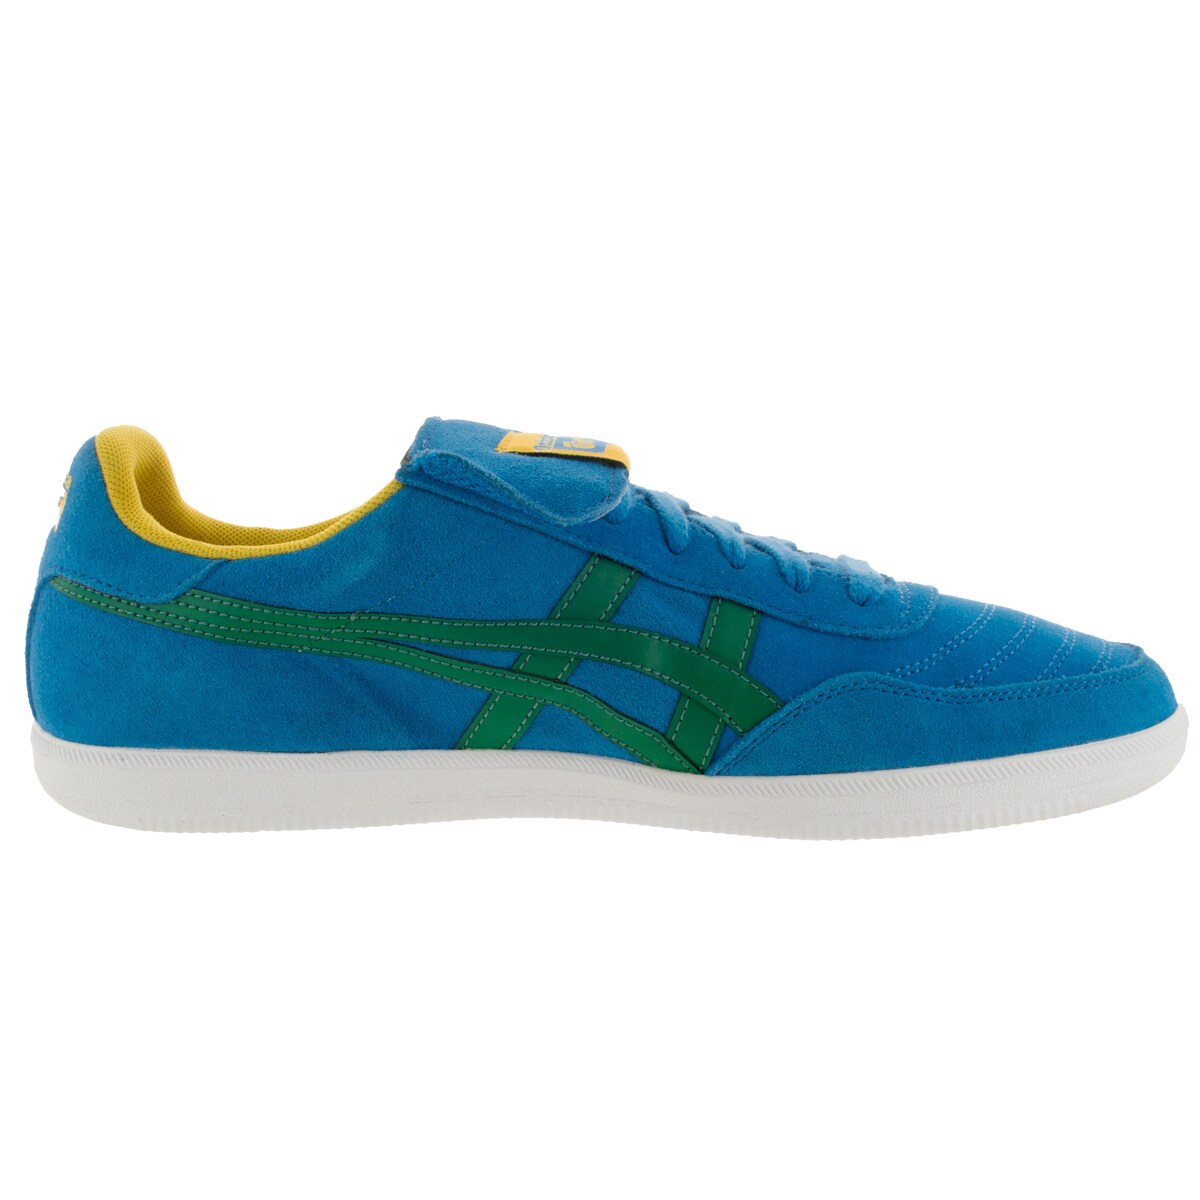 official photos 86511 ef575 Onitsuka Tiger Unisex Hulse Mid Blue/Green Suede Casual Shoe